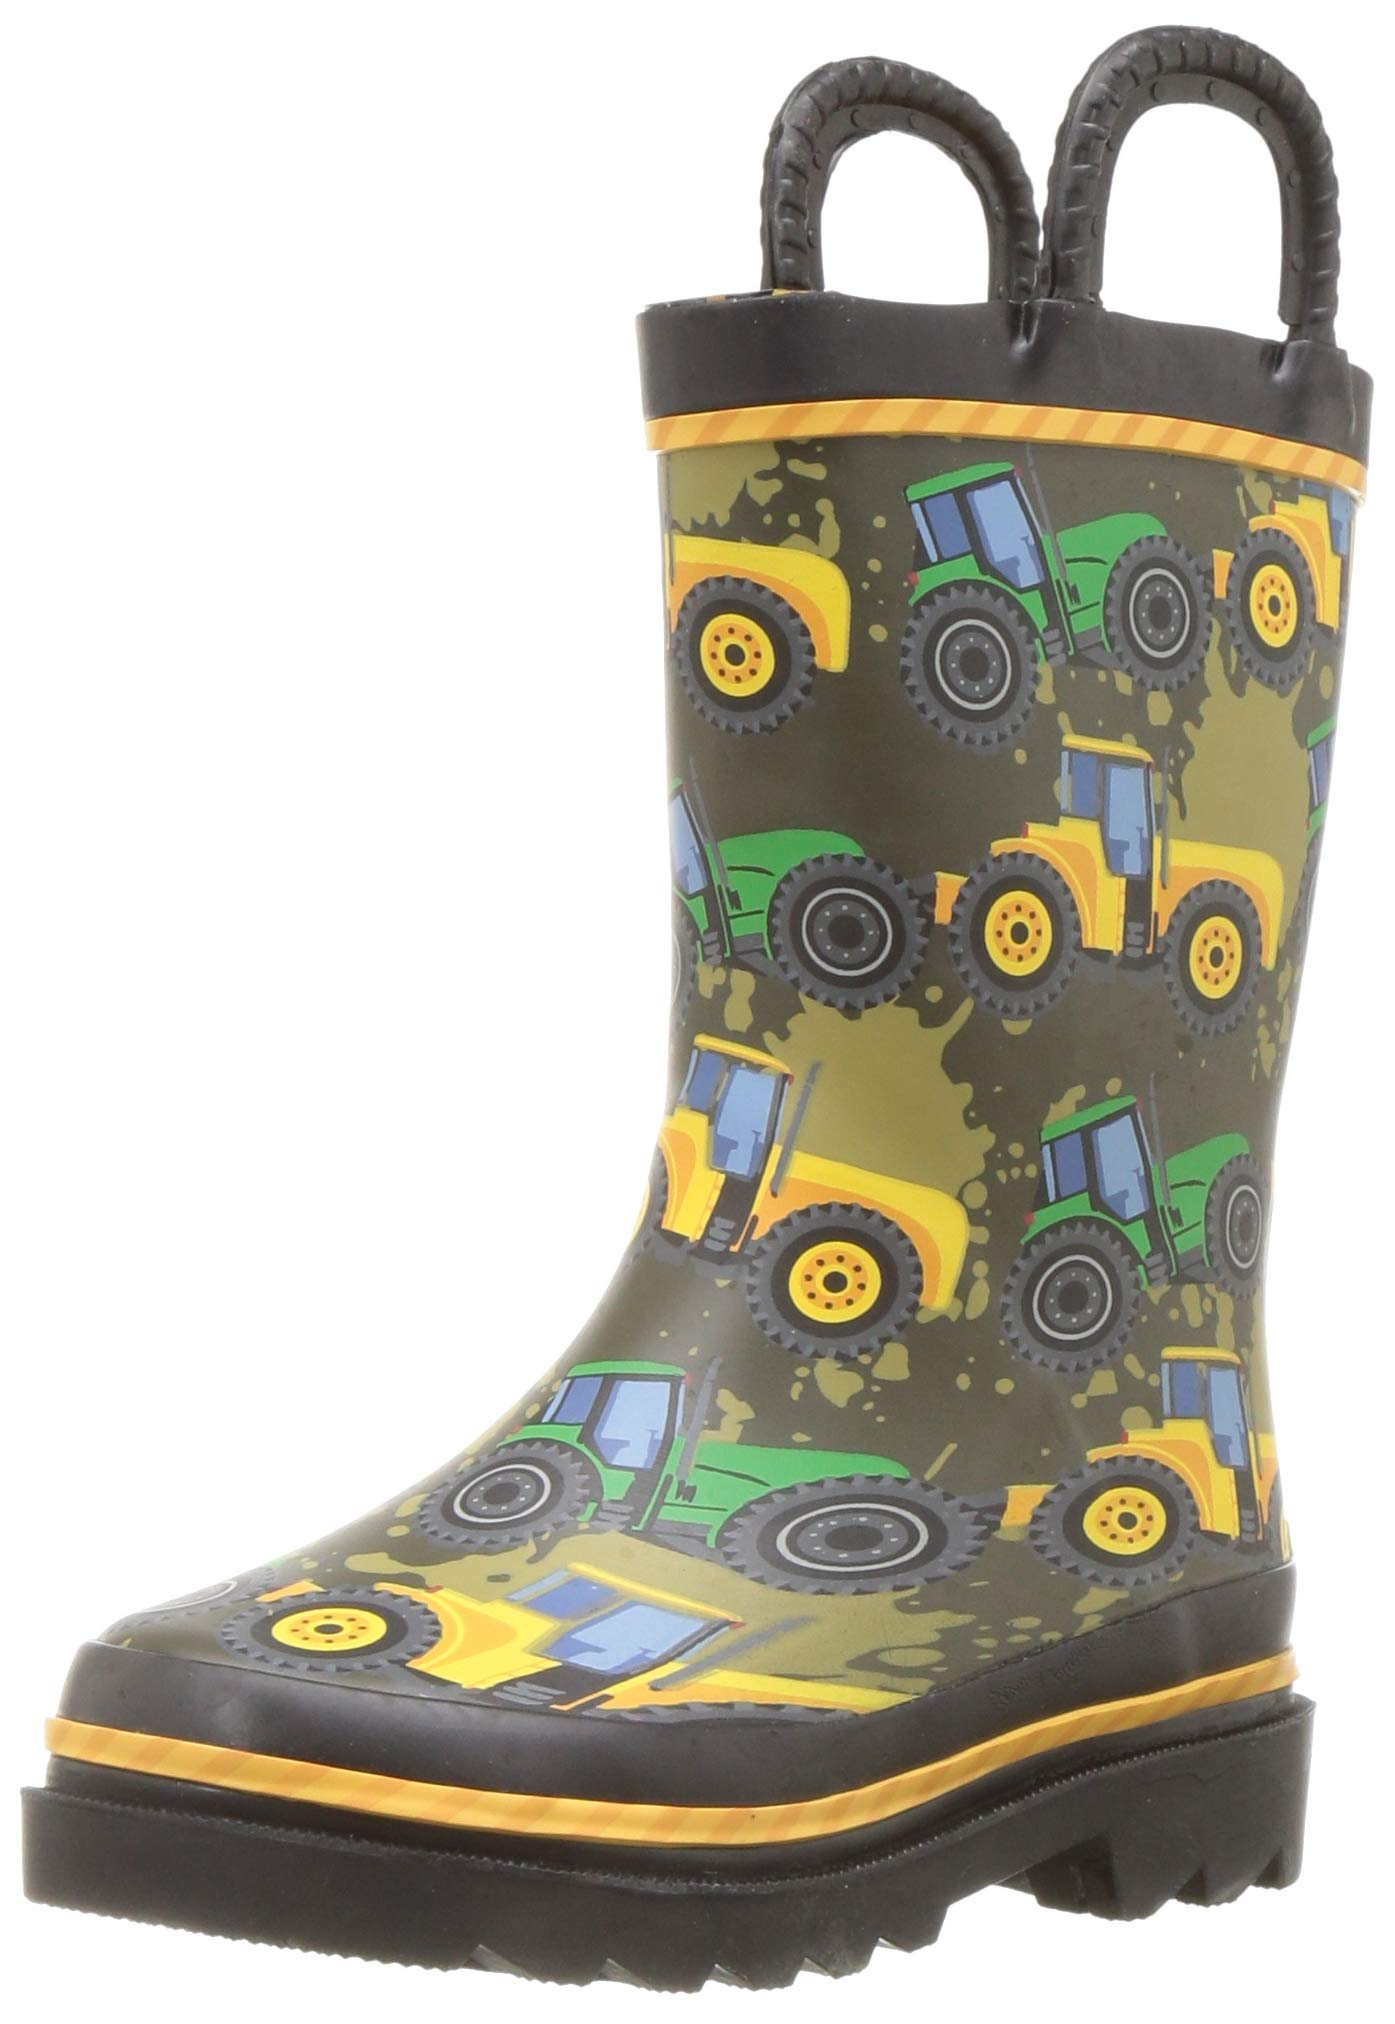 644b1578d855 Galleon - Western Chief Waterproof Printed Rain Boot With Easy Pull ...